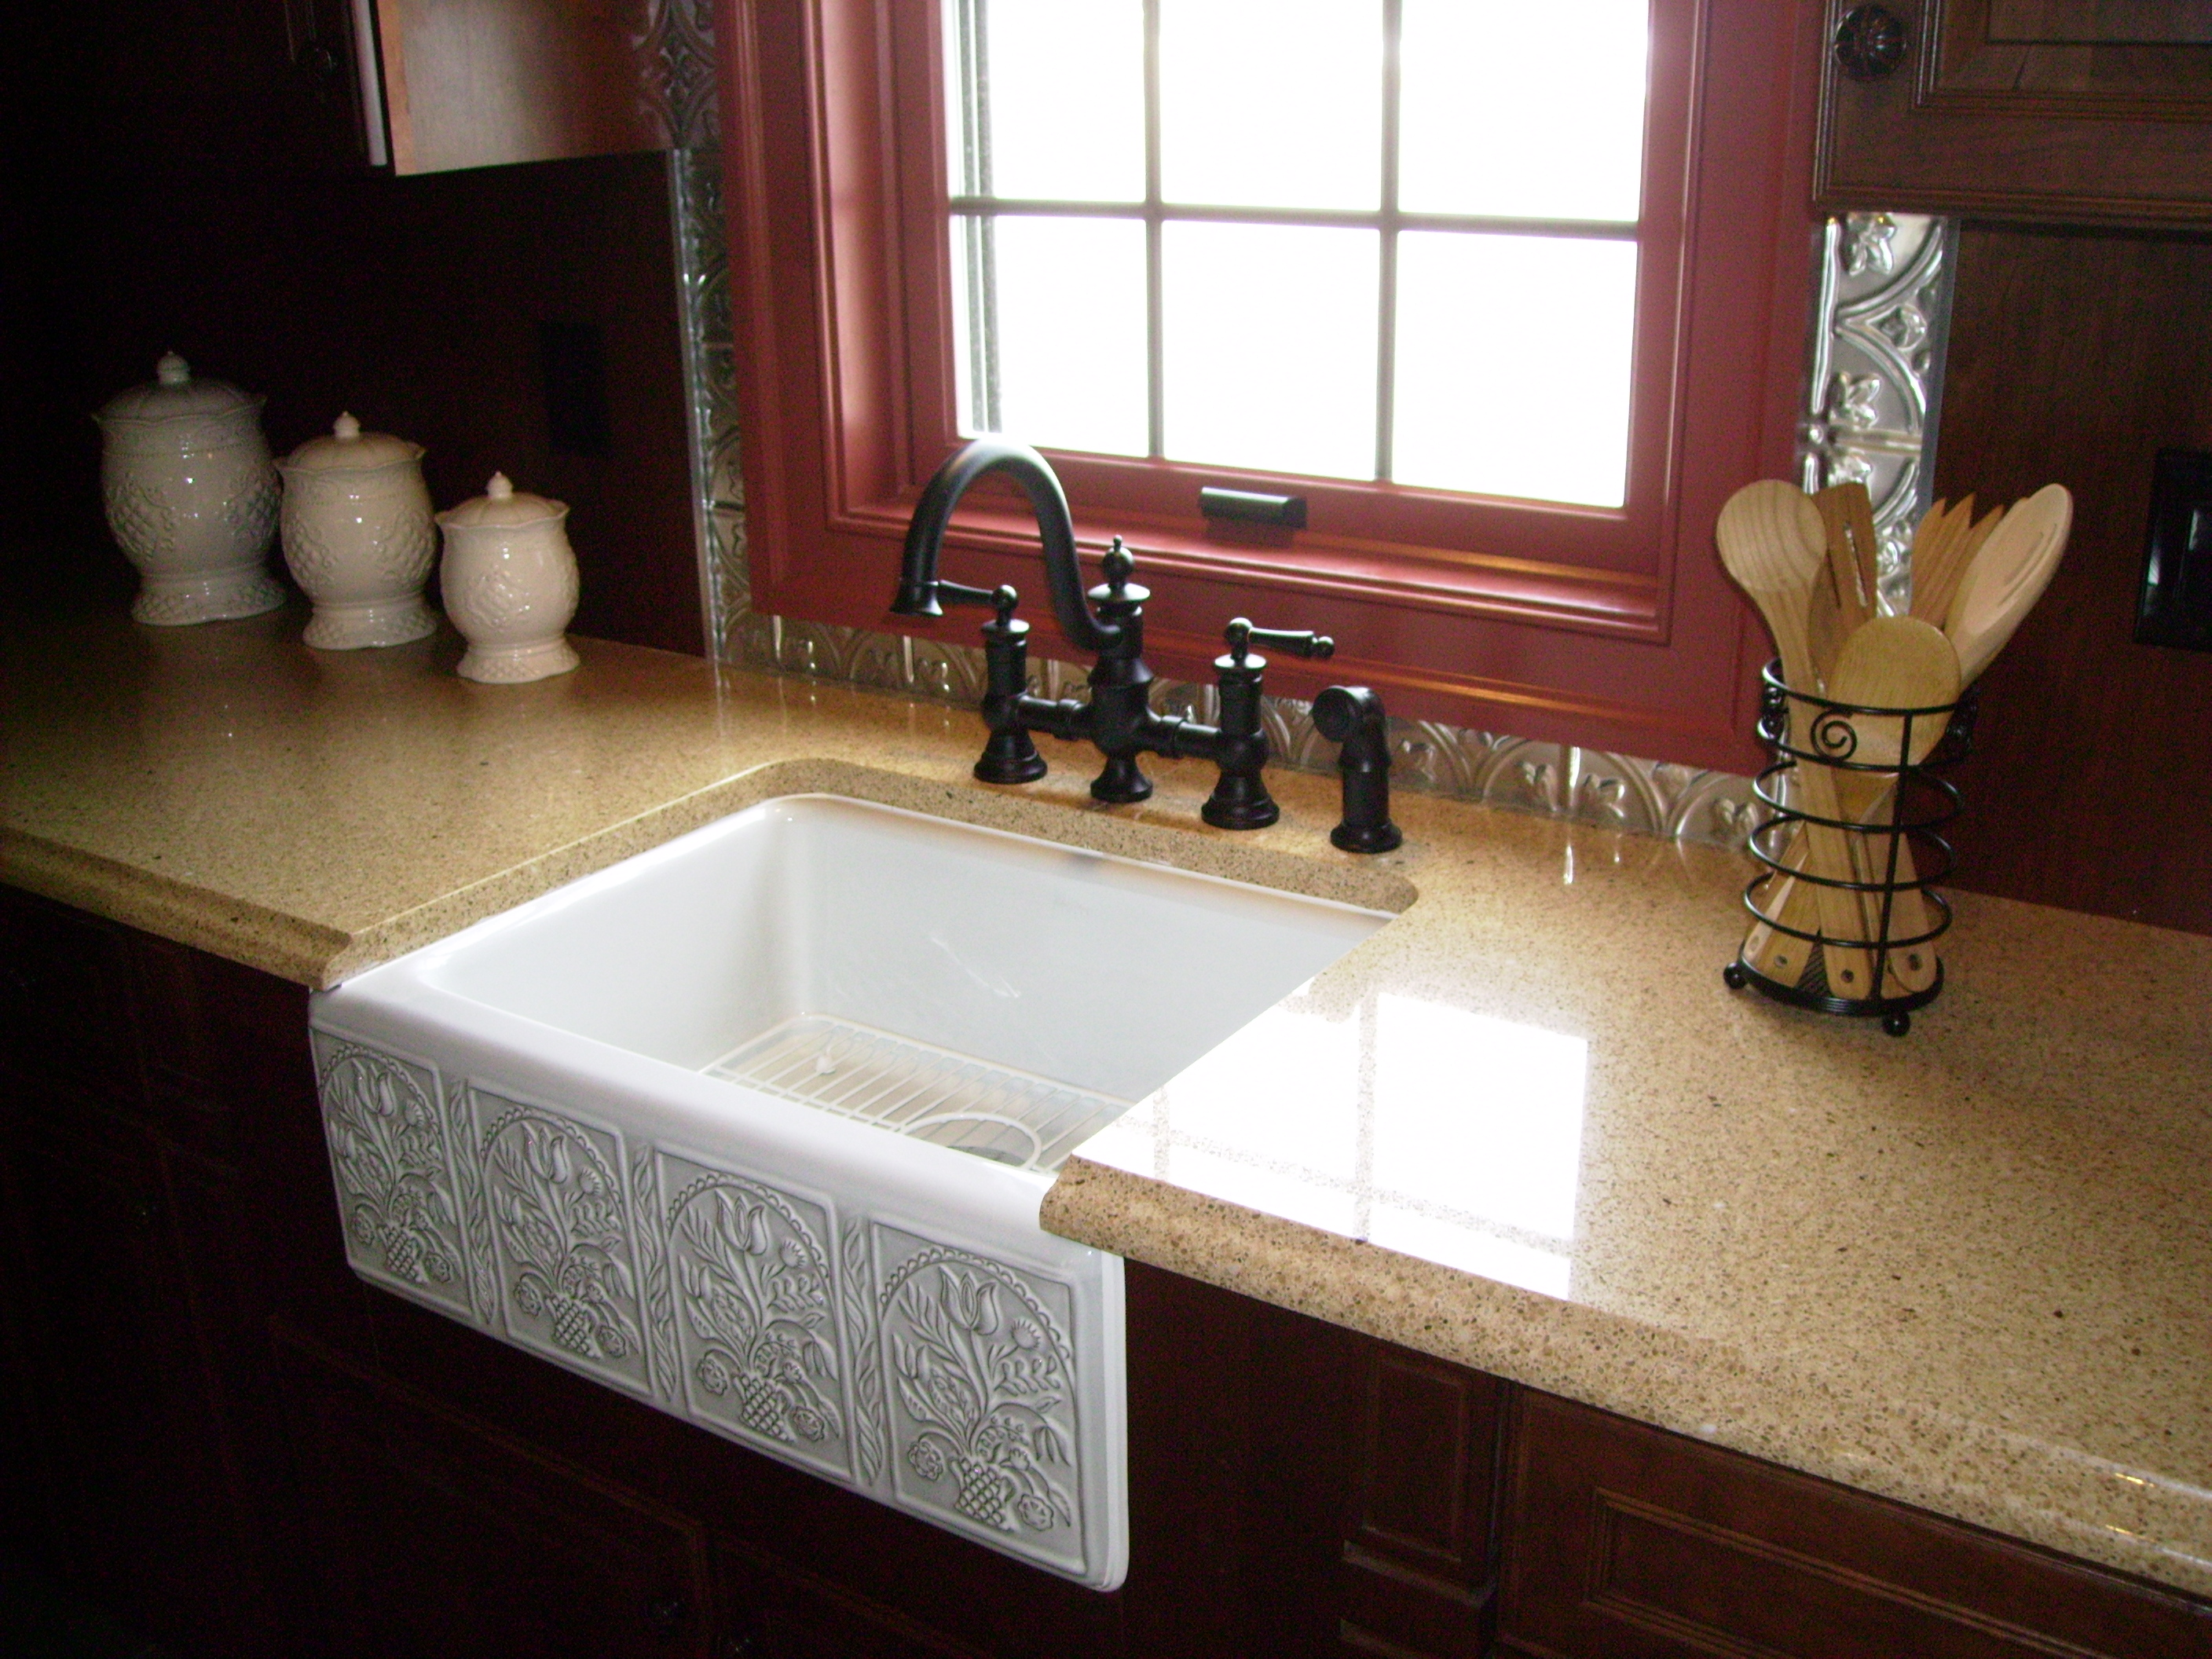 Awesome Square White Apron Sink Plus Black Faucet On Brown Kitchen Cabinet With Countertop Before The Window Ideas